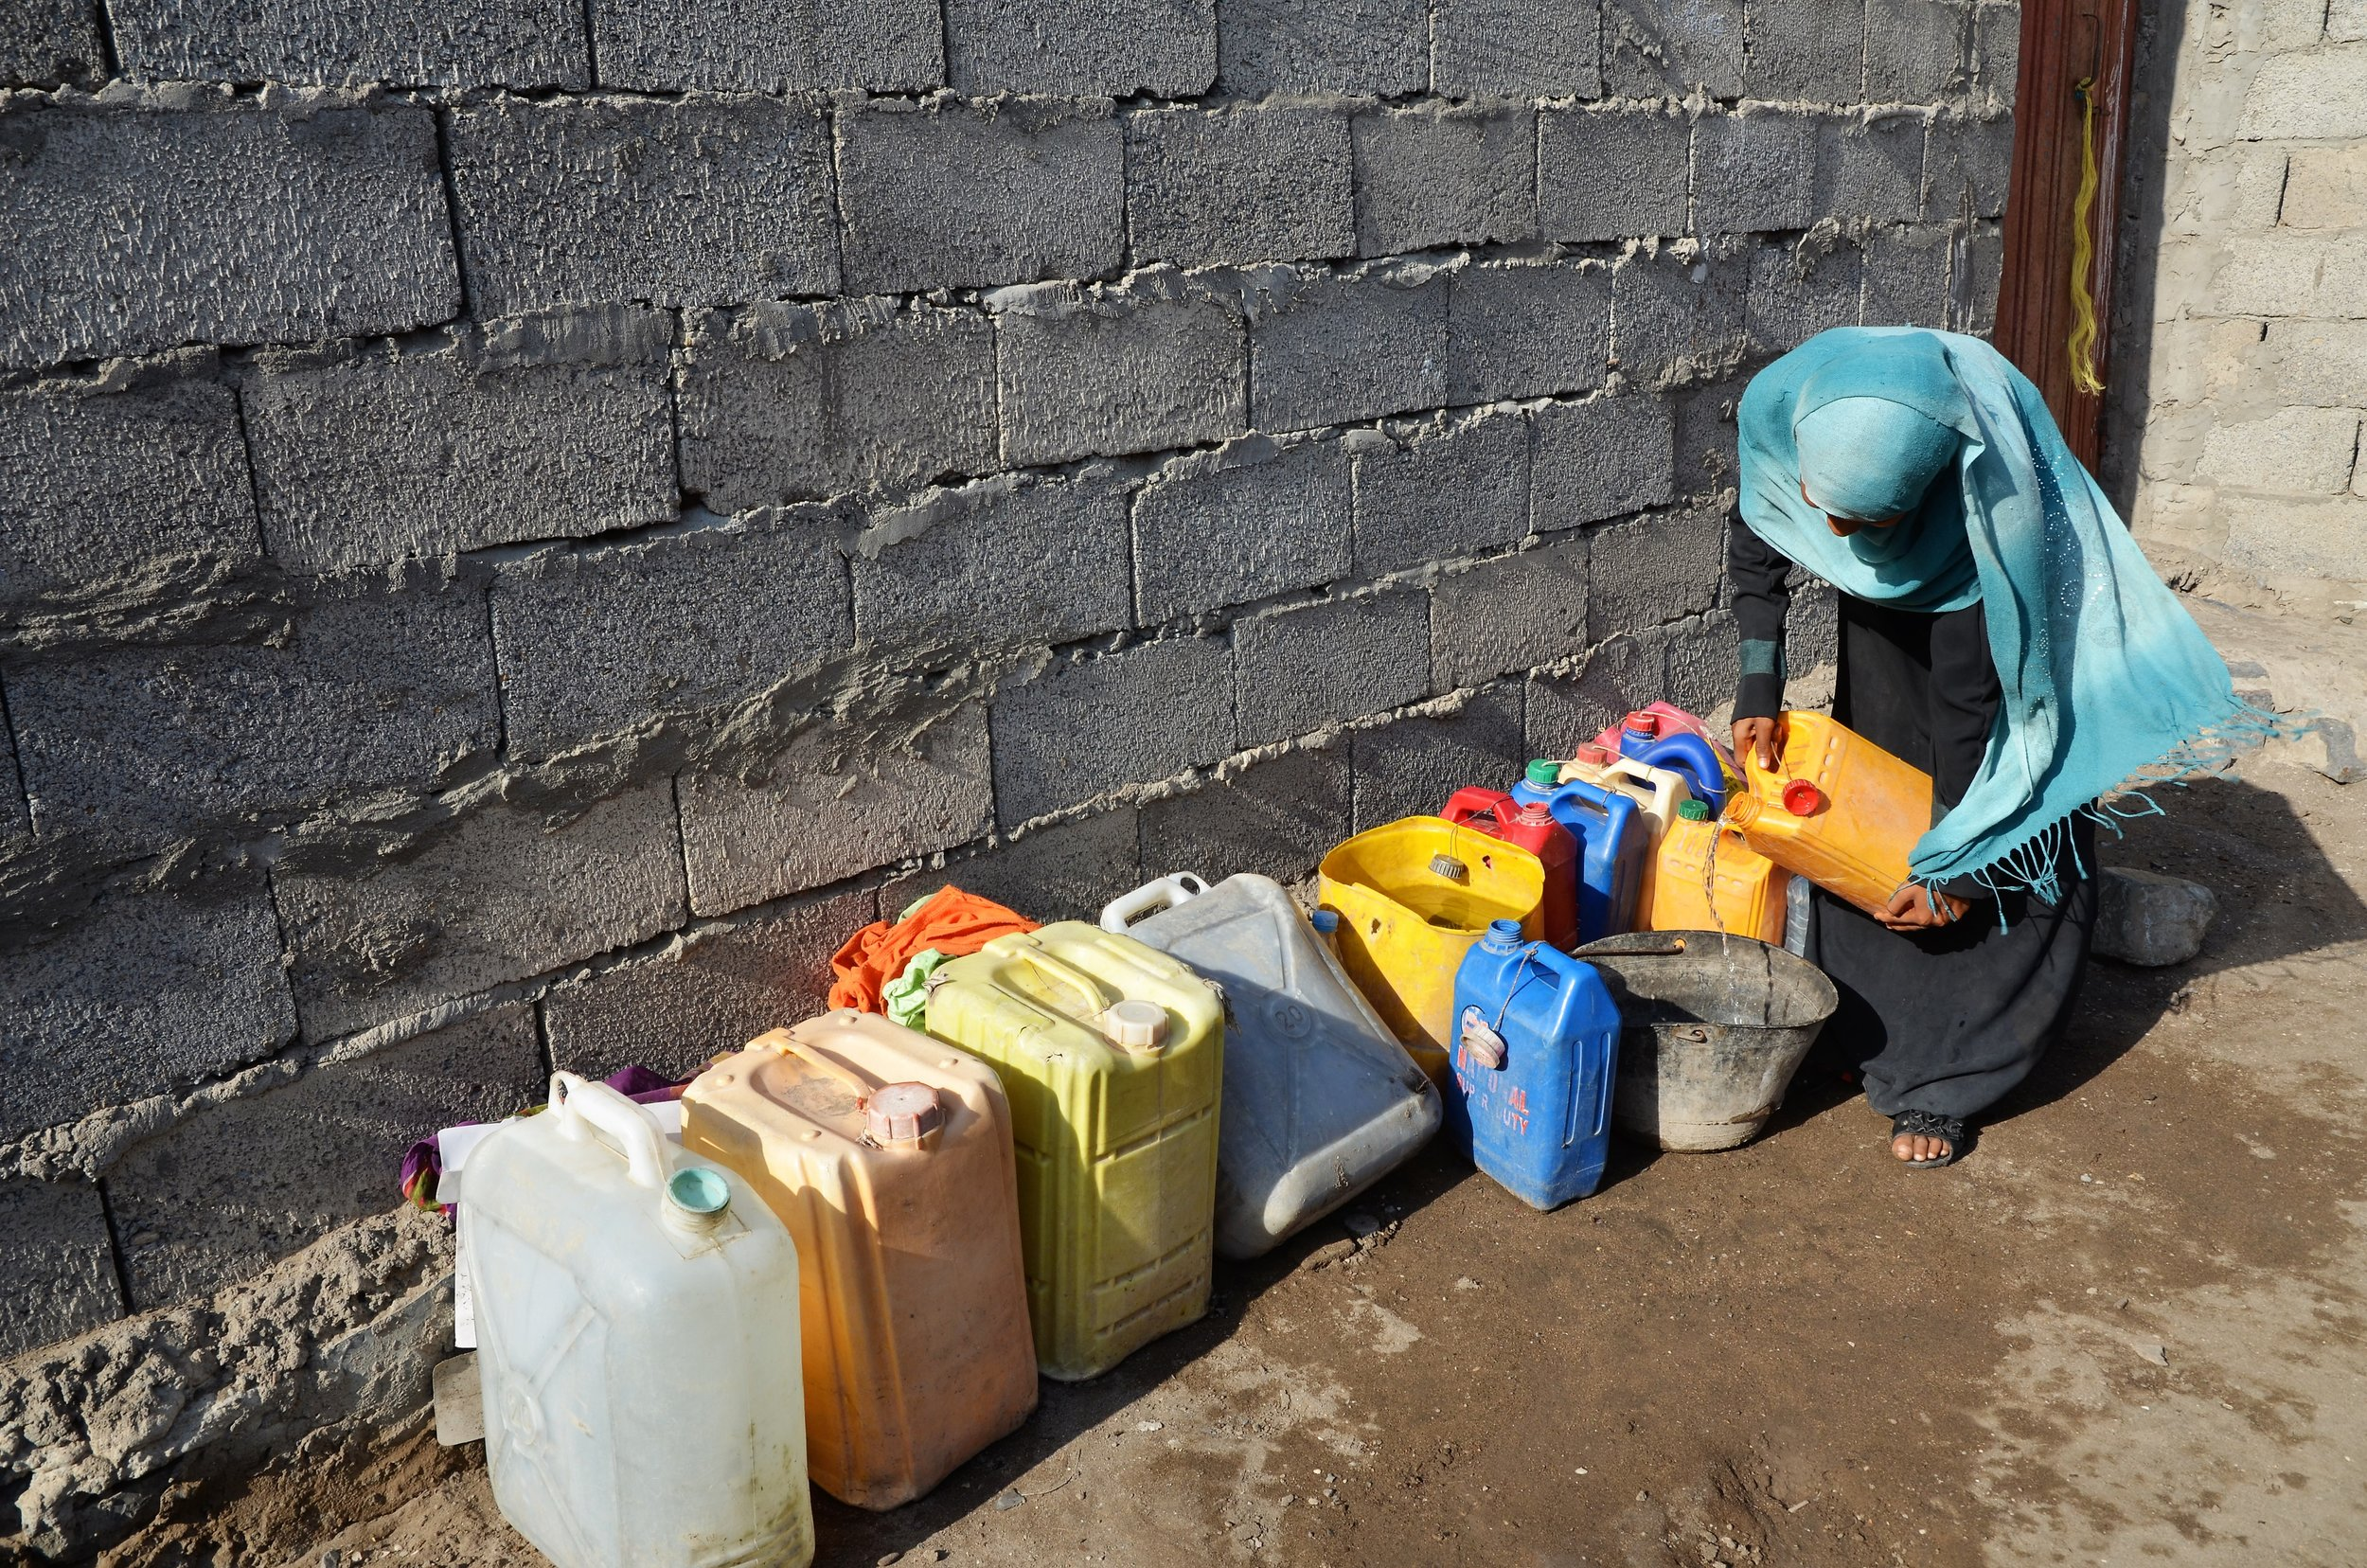 Photo caption: Sarah empties the water from bottles. Photo credit: Save the Children.